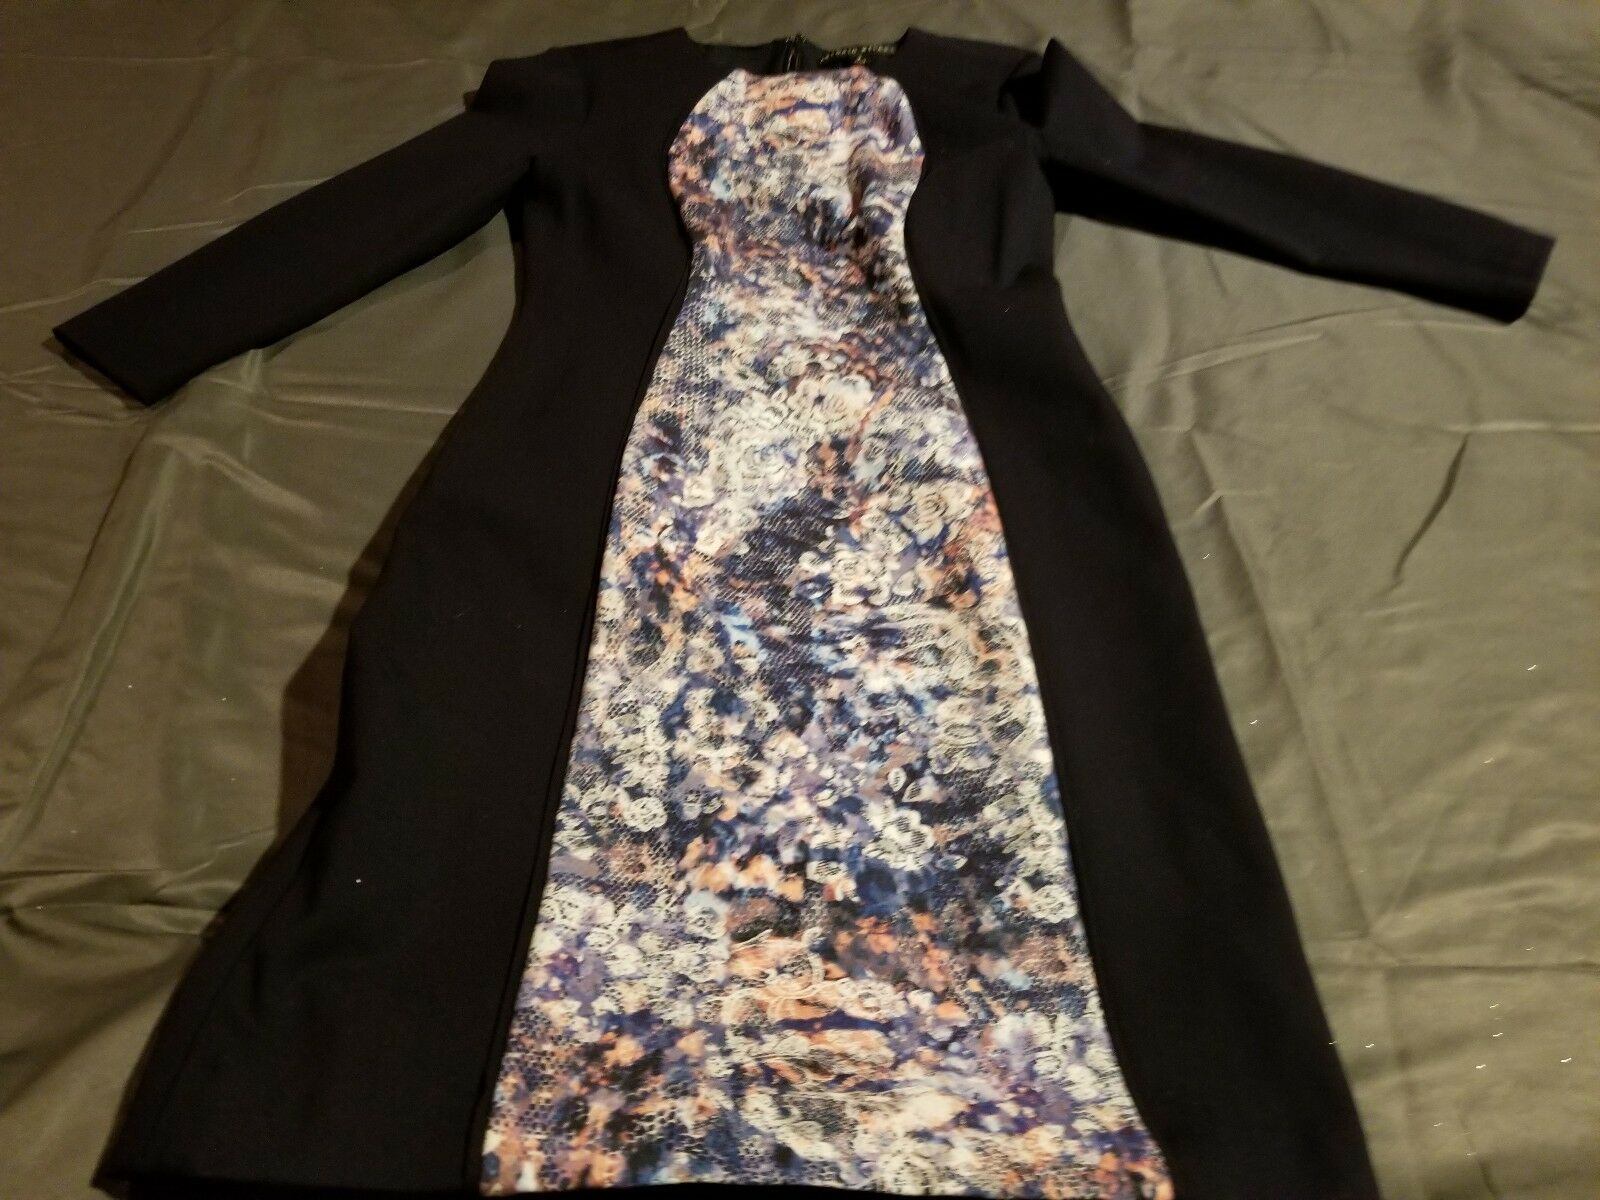 Dress, ANTONIO MELANI Navy bluee & Multi- floral pencil style 3 4  sleeves Size 2